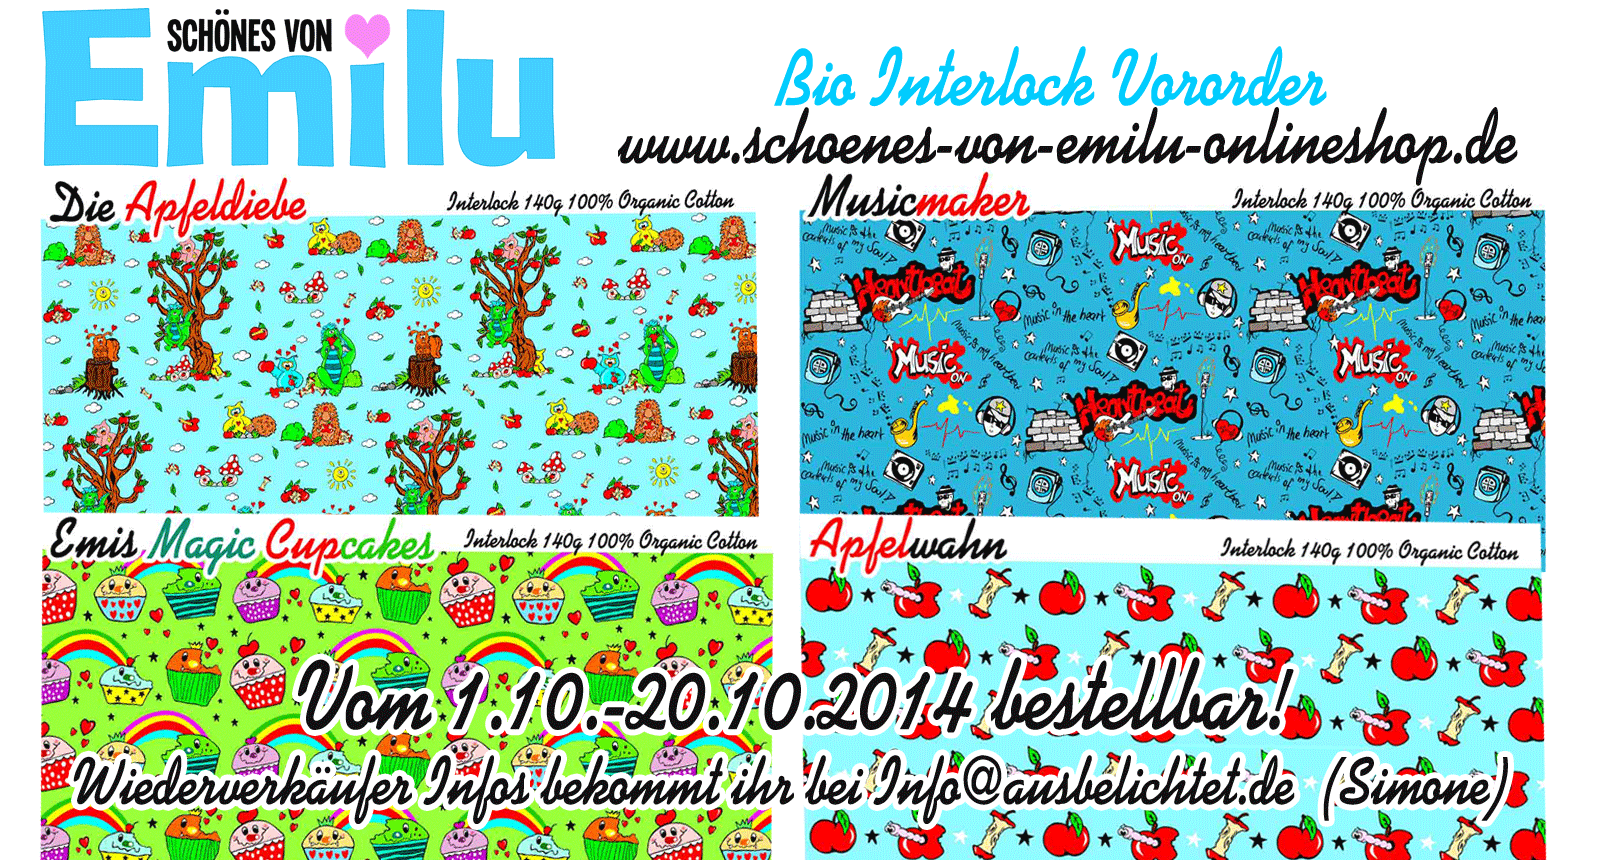 http://www.schoenes-von-emilu-onlineshop.de/epages/63605954.sf/de_DE/?ObjectPath=/Shops/63605954/Categories/Category3